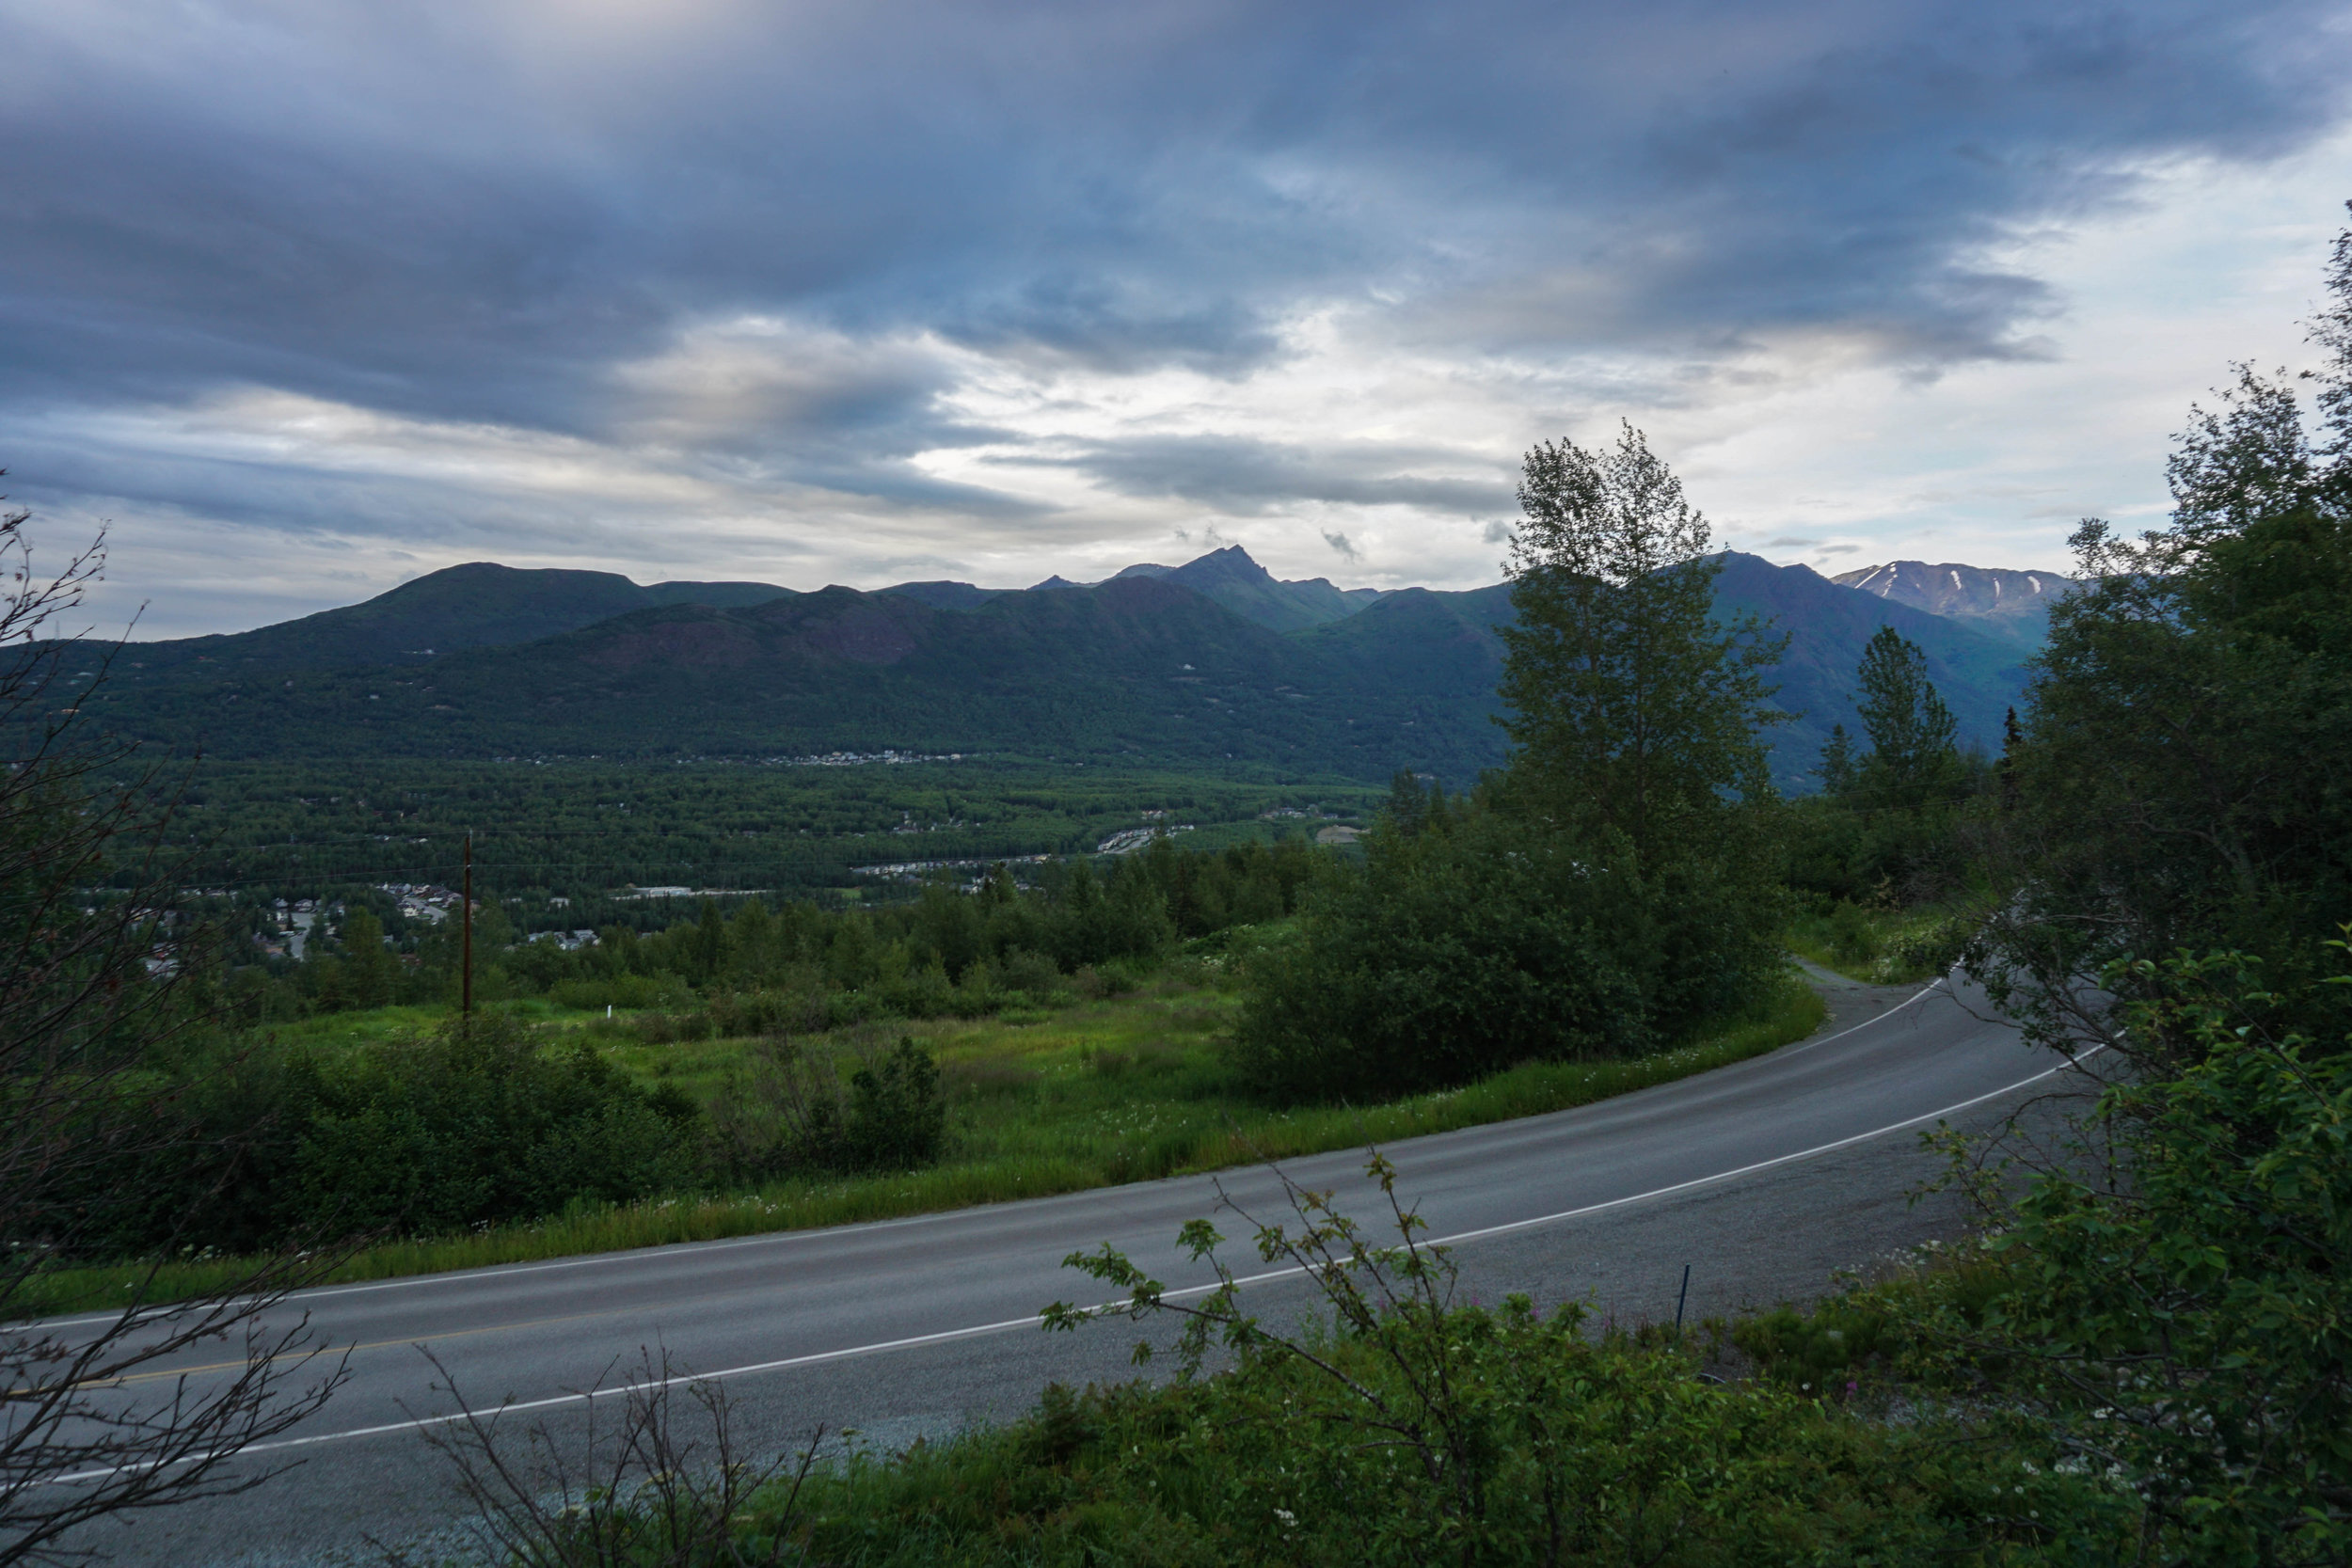 I took this when I was doing a little easy hiking around Anchorage.